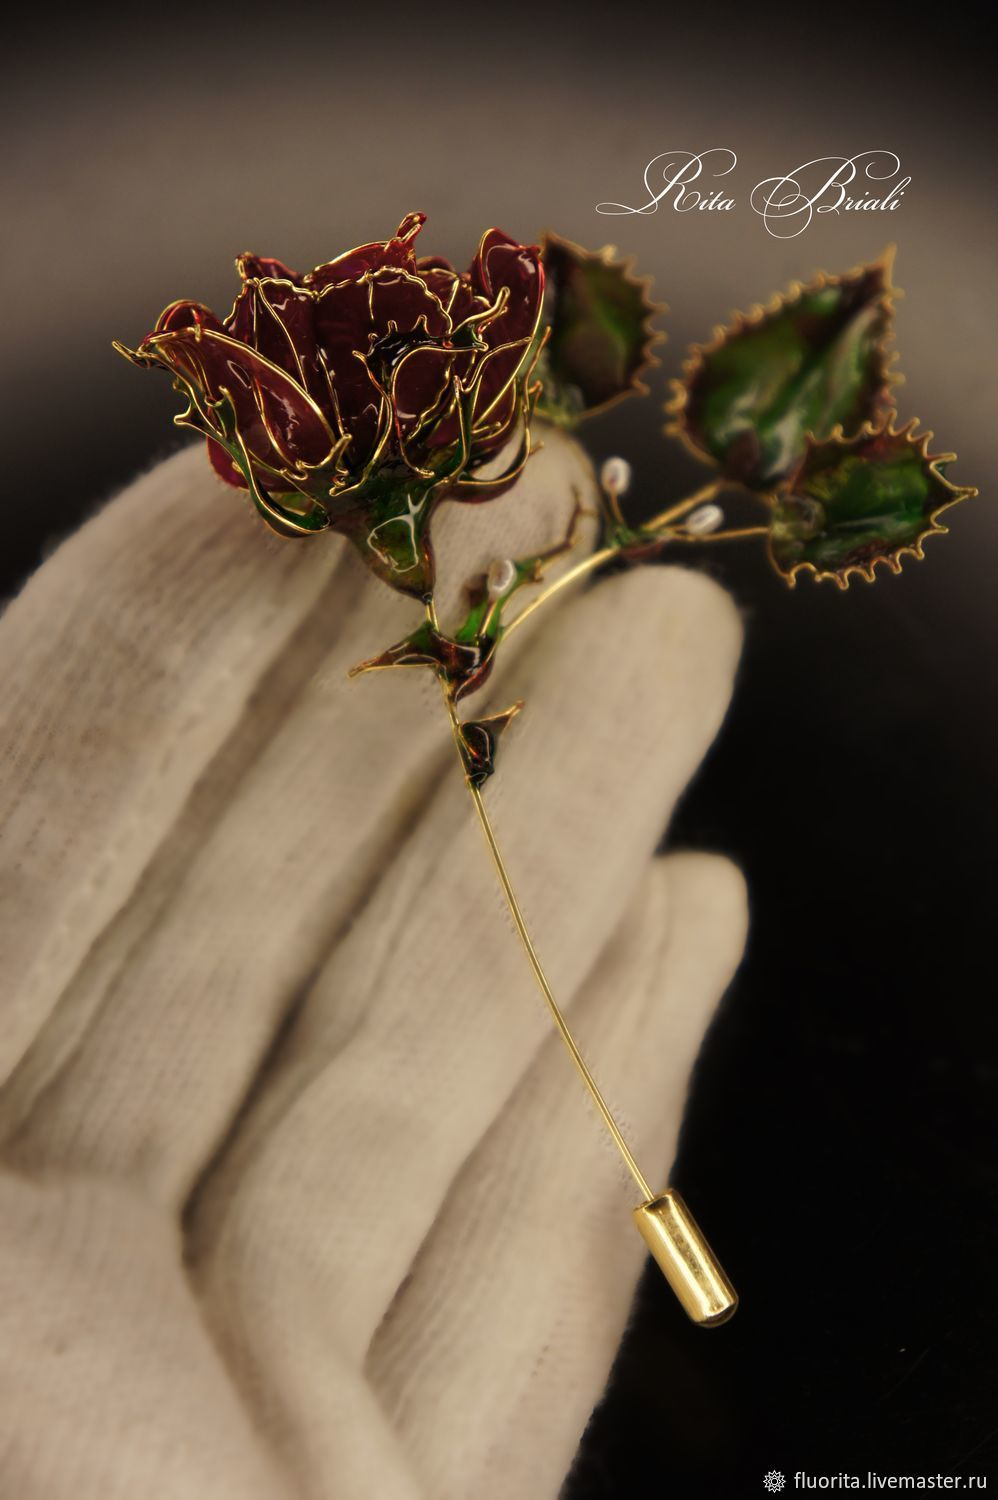 Gold-plated brooch 'Red rose' Rita Briali, Brooches, St. Petersburg,  Фото №1